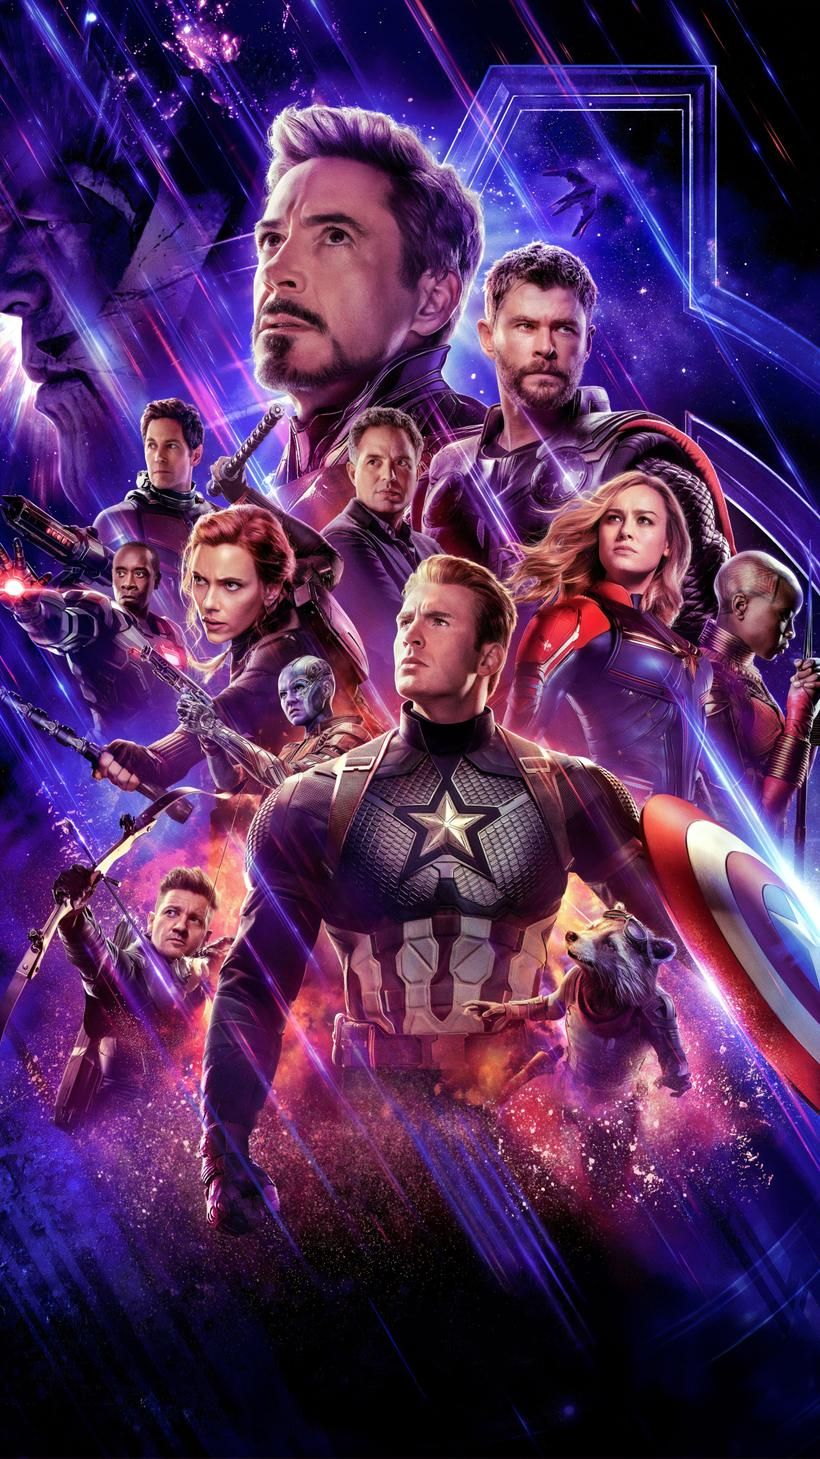 Avengers Endgame 2019 Phone Wallpaper Fotos De Avengers